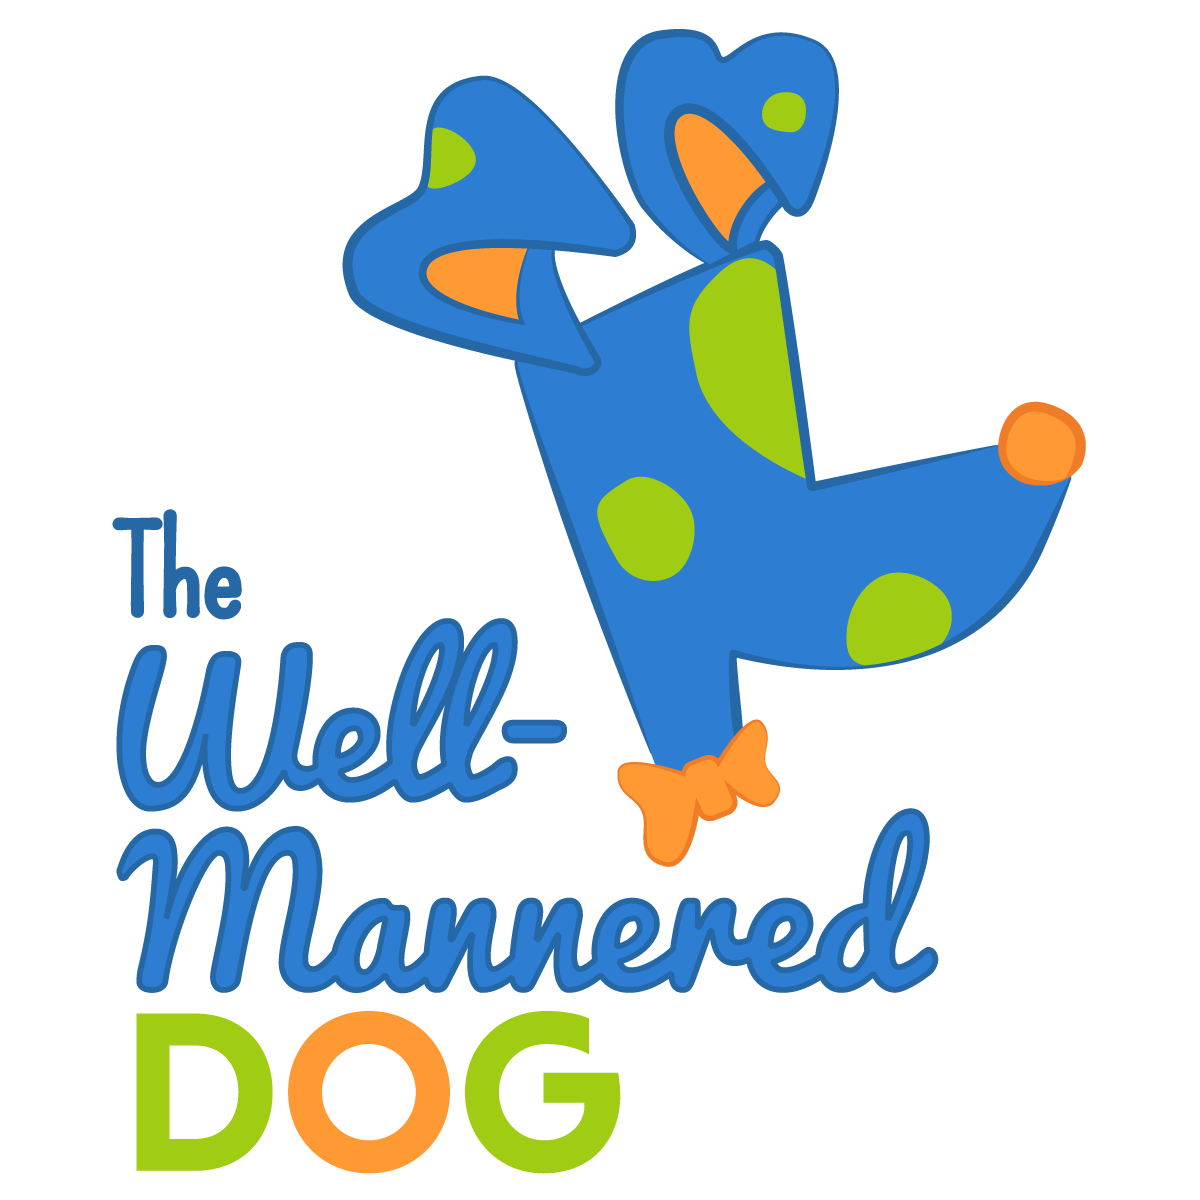 The Well-Mannered Dog, LLC/ Dog training/ Puppy Classes/ eugene oregon/positive reinforcement/behavior/manners/obedience